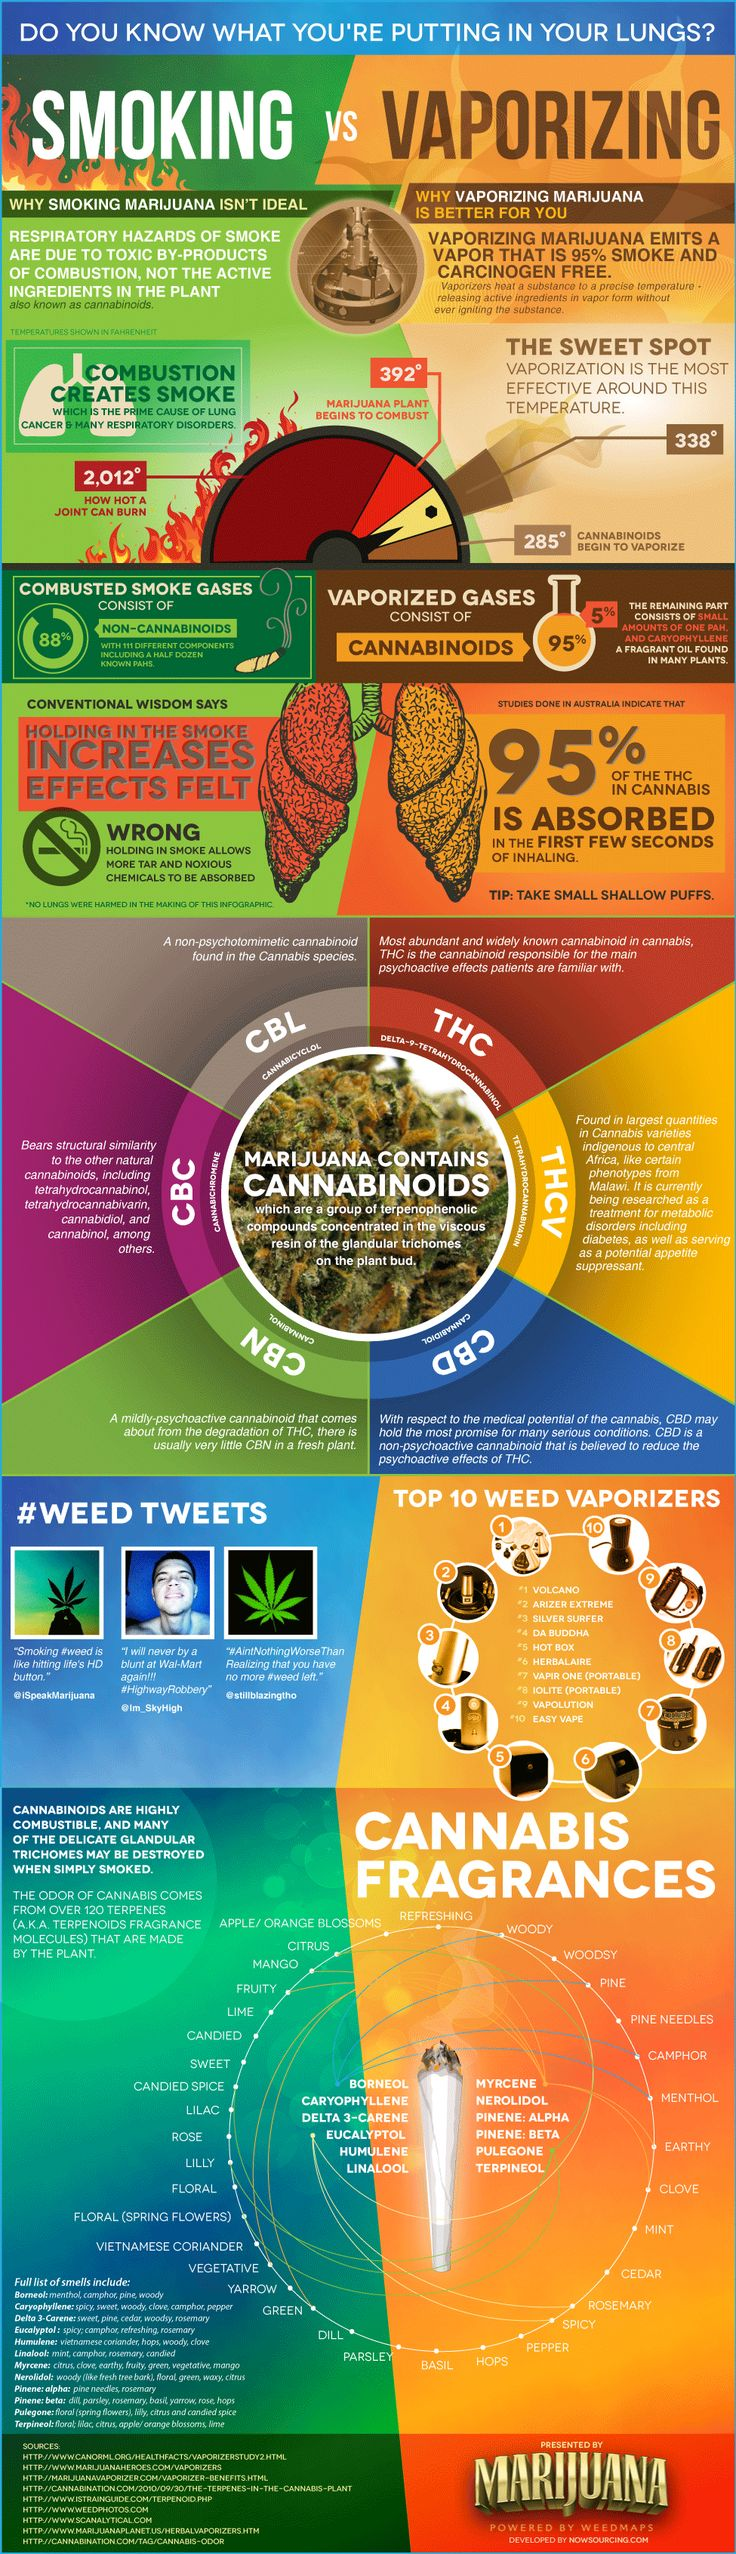 From the weedblog.com             smoking marijuana vs vaporizing marijuana